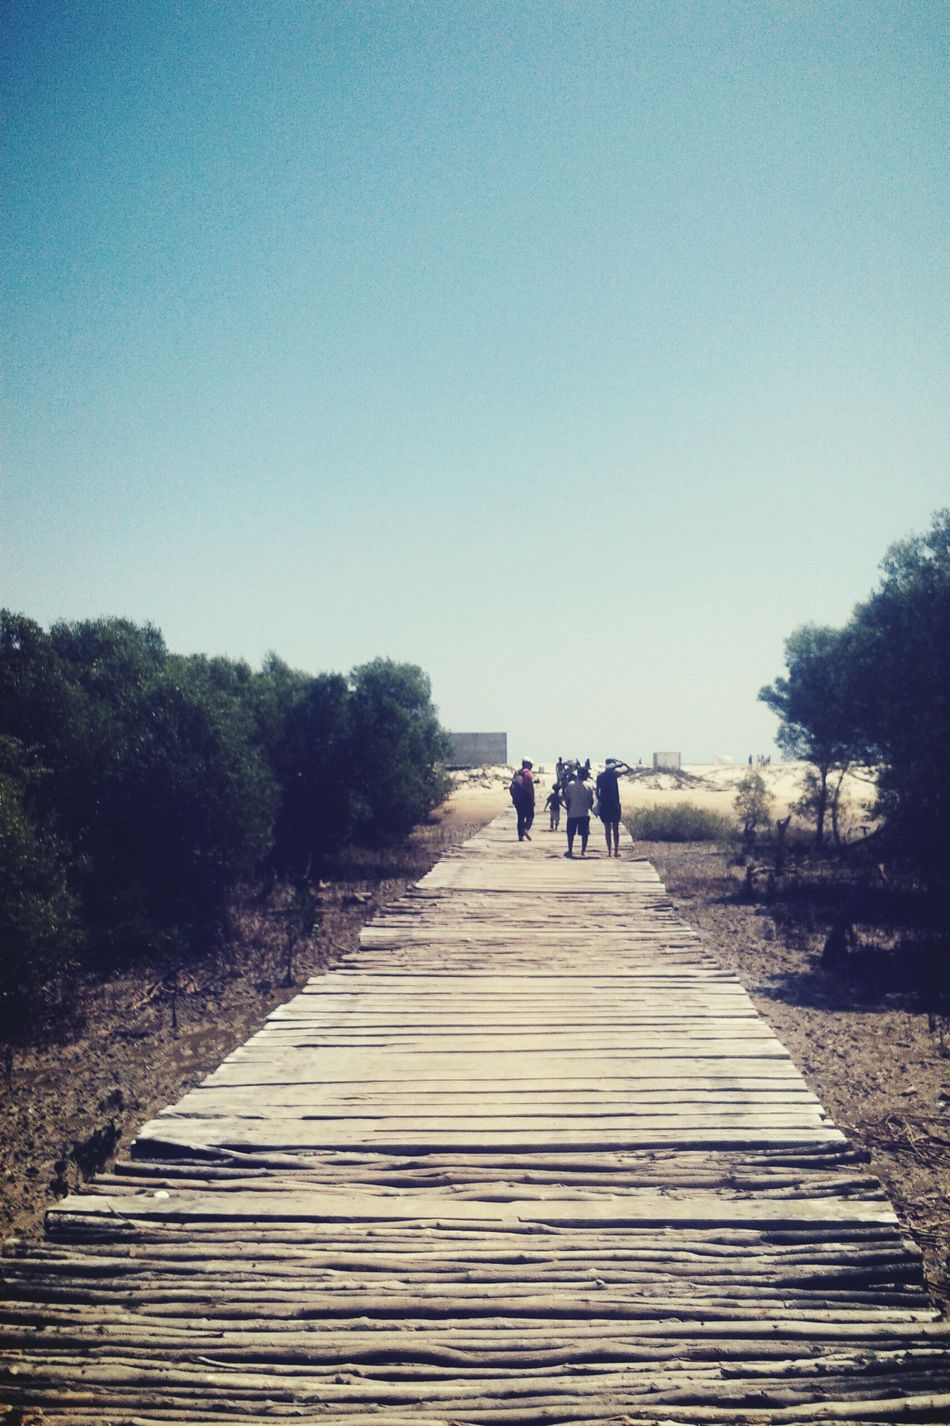 On the way to the beach!! Beach Please Beach Bridge Nature Landscape Mobile Photography